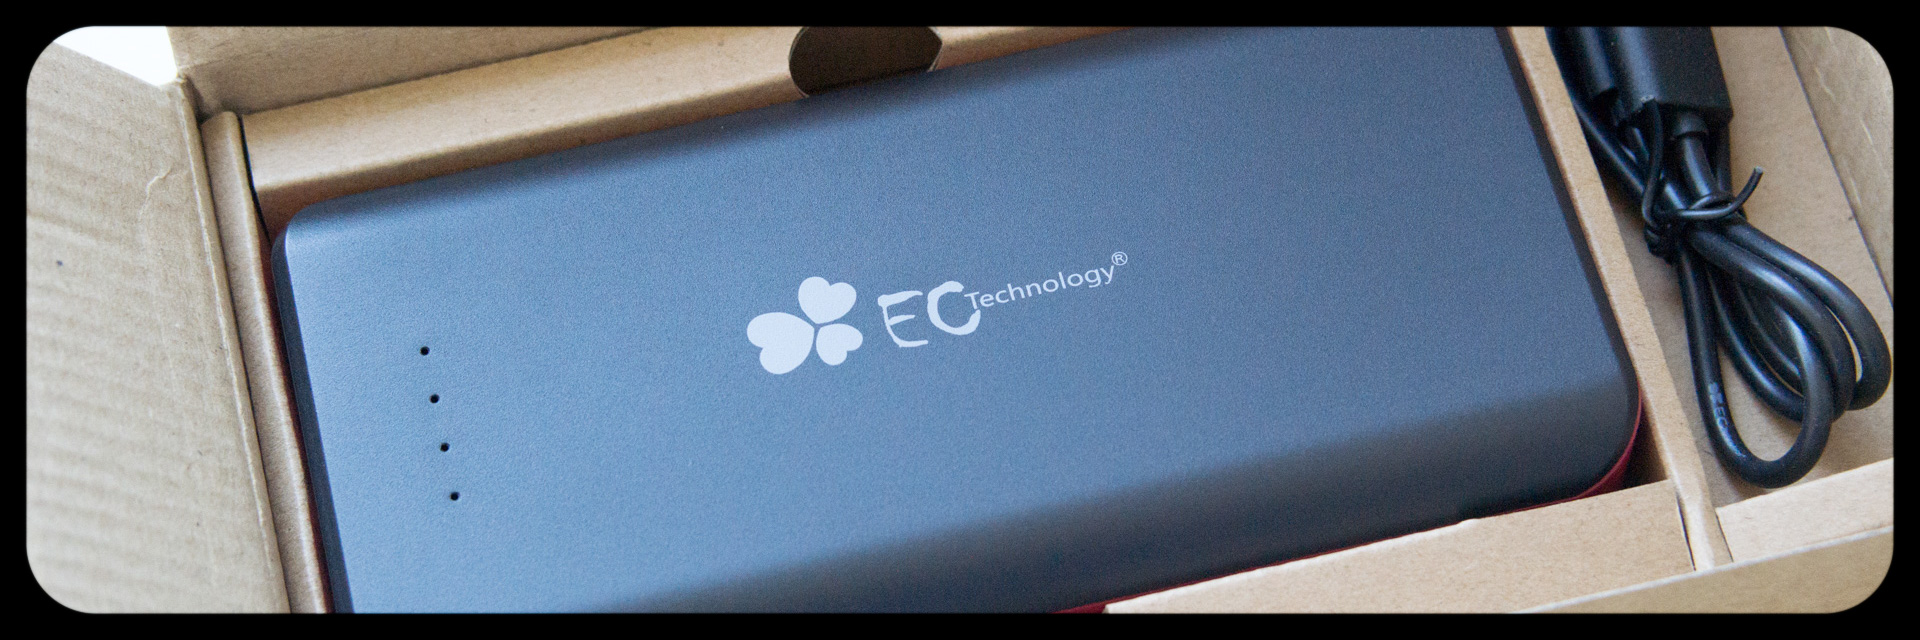 Review EC Technology 2.Gen. 22400 mAh